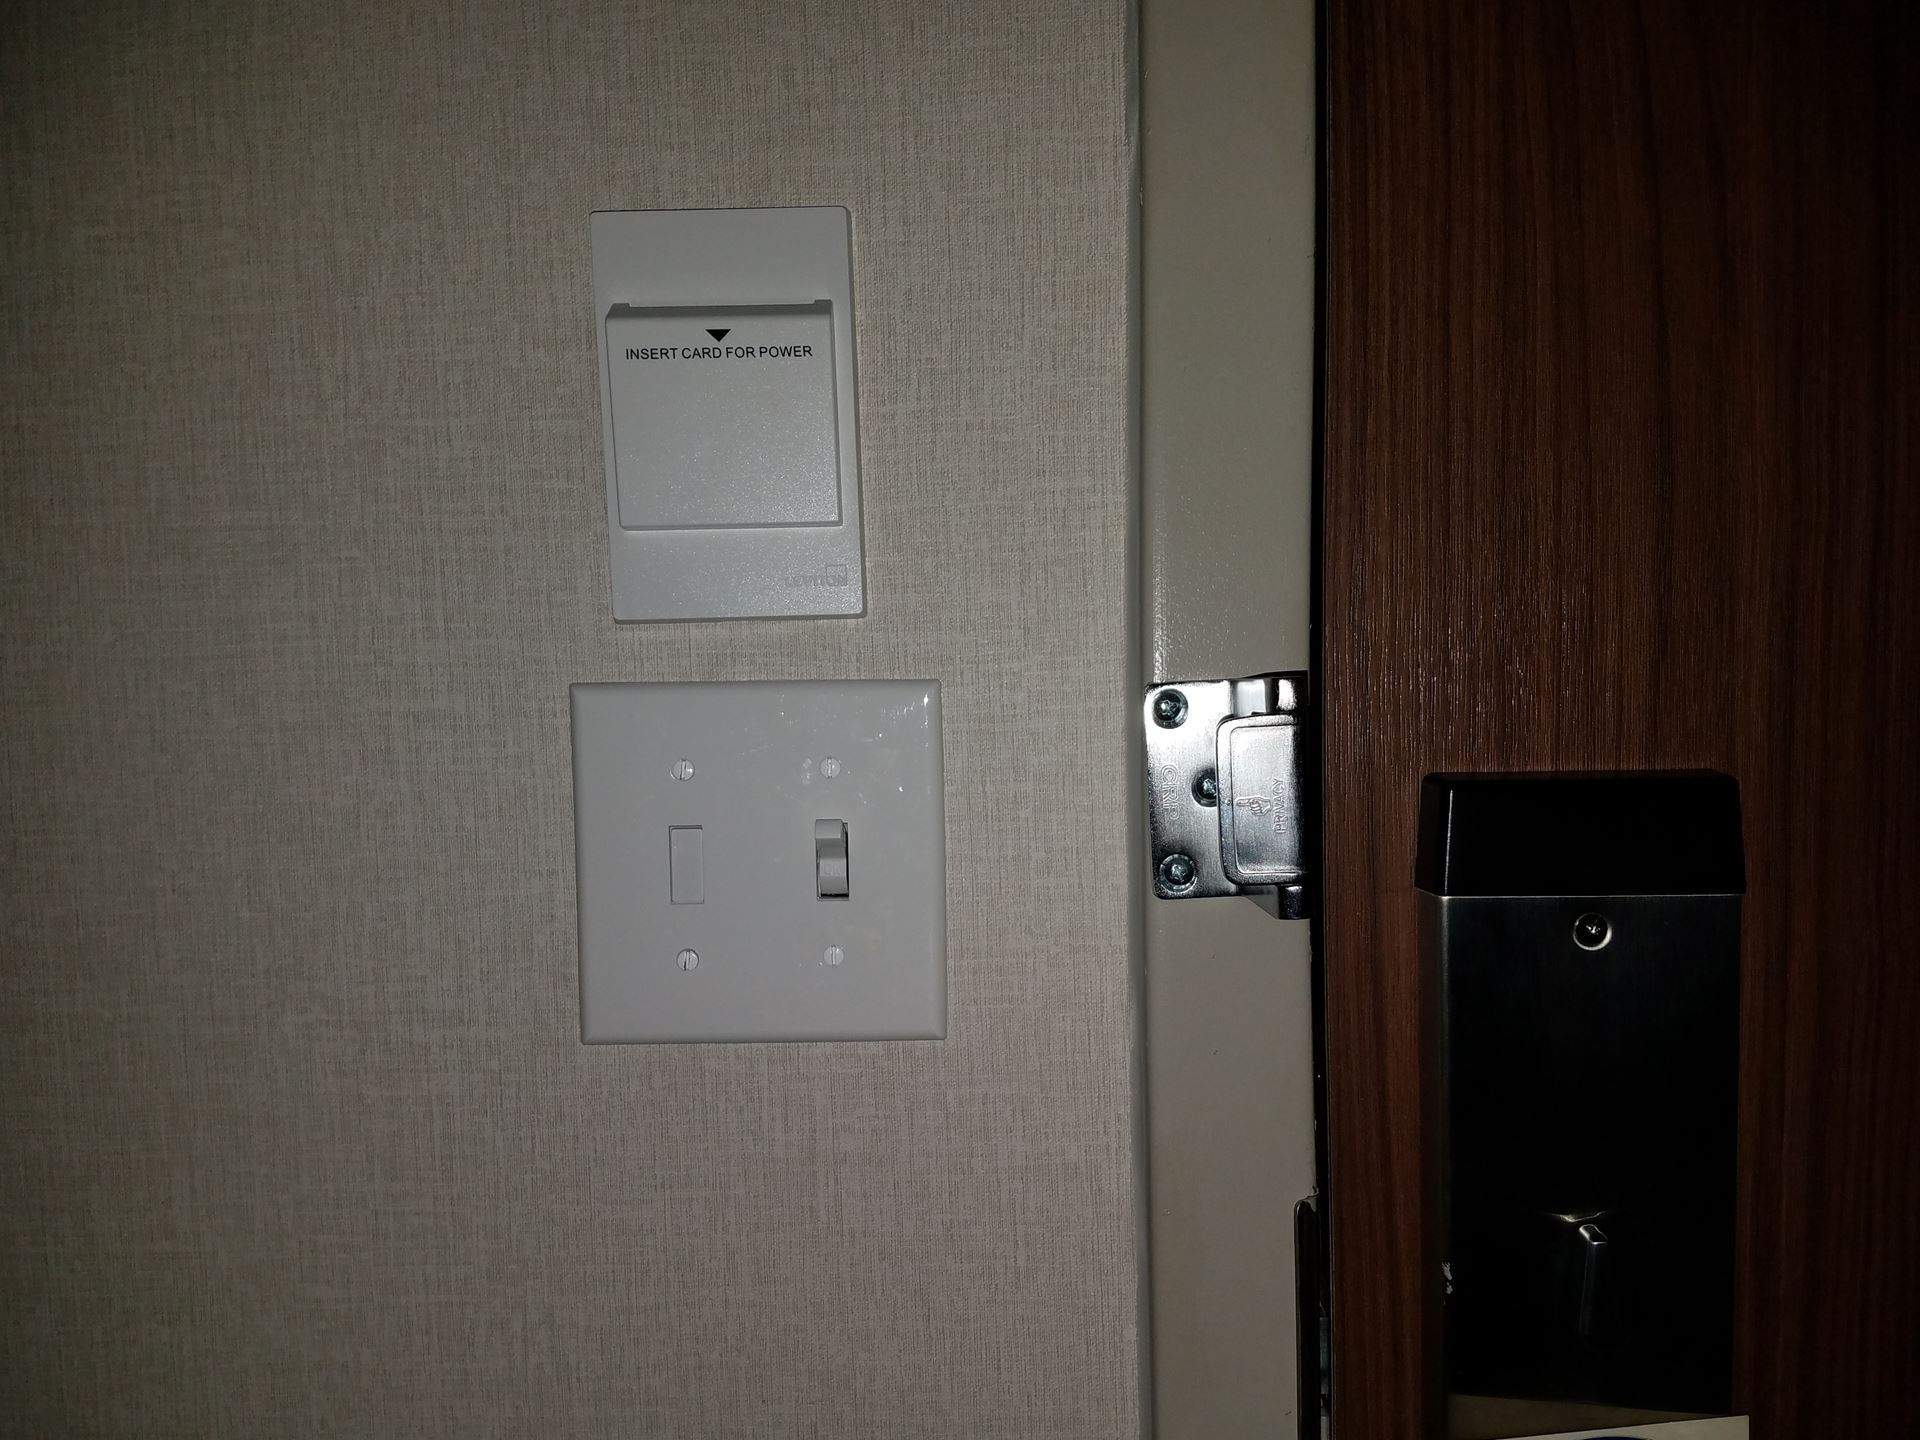 Card slot above light switch